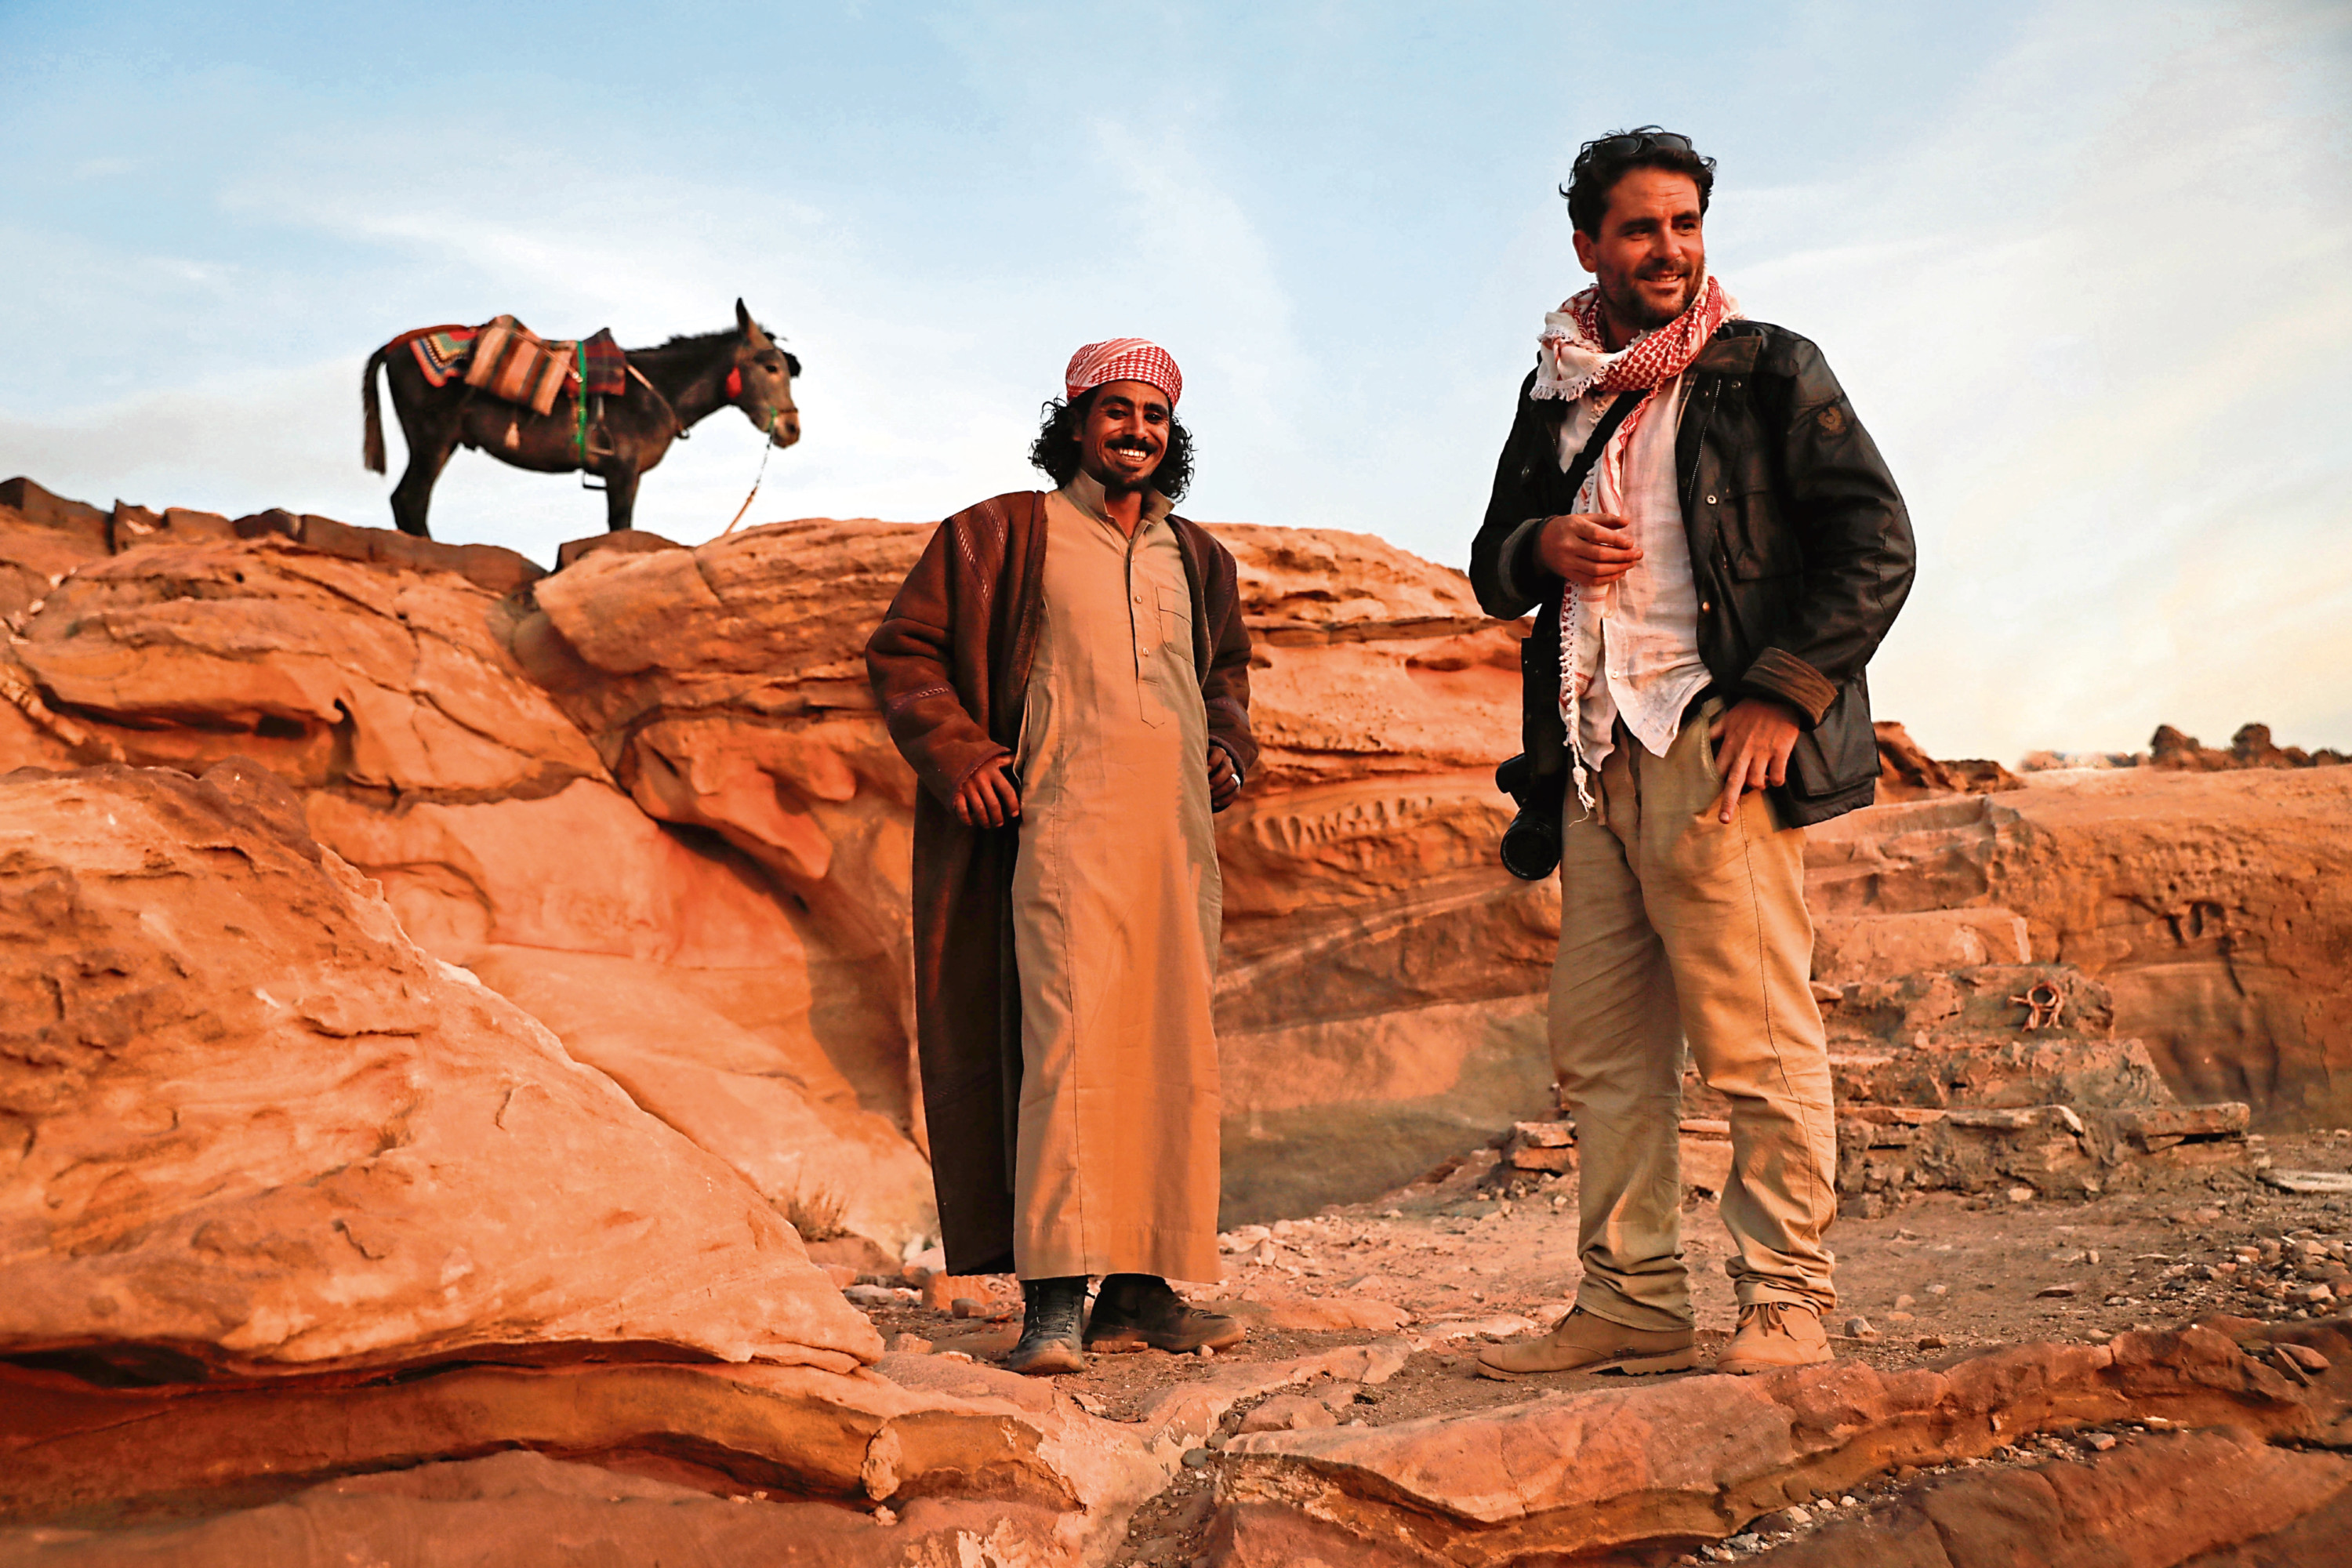 Levison Wood in Arabia.